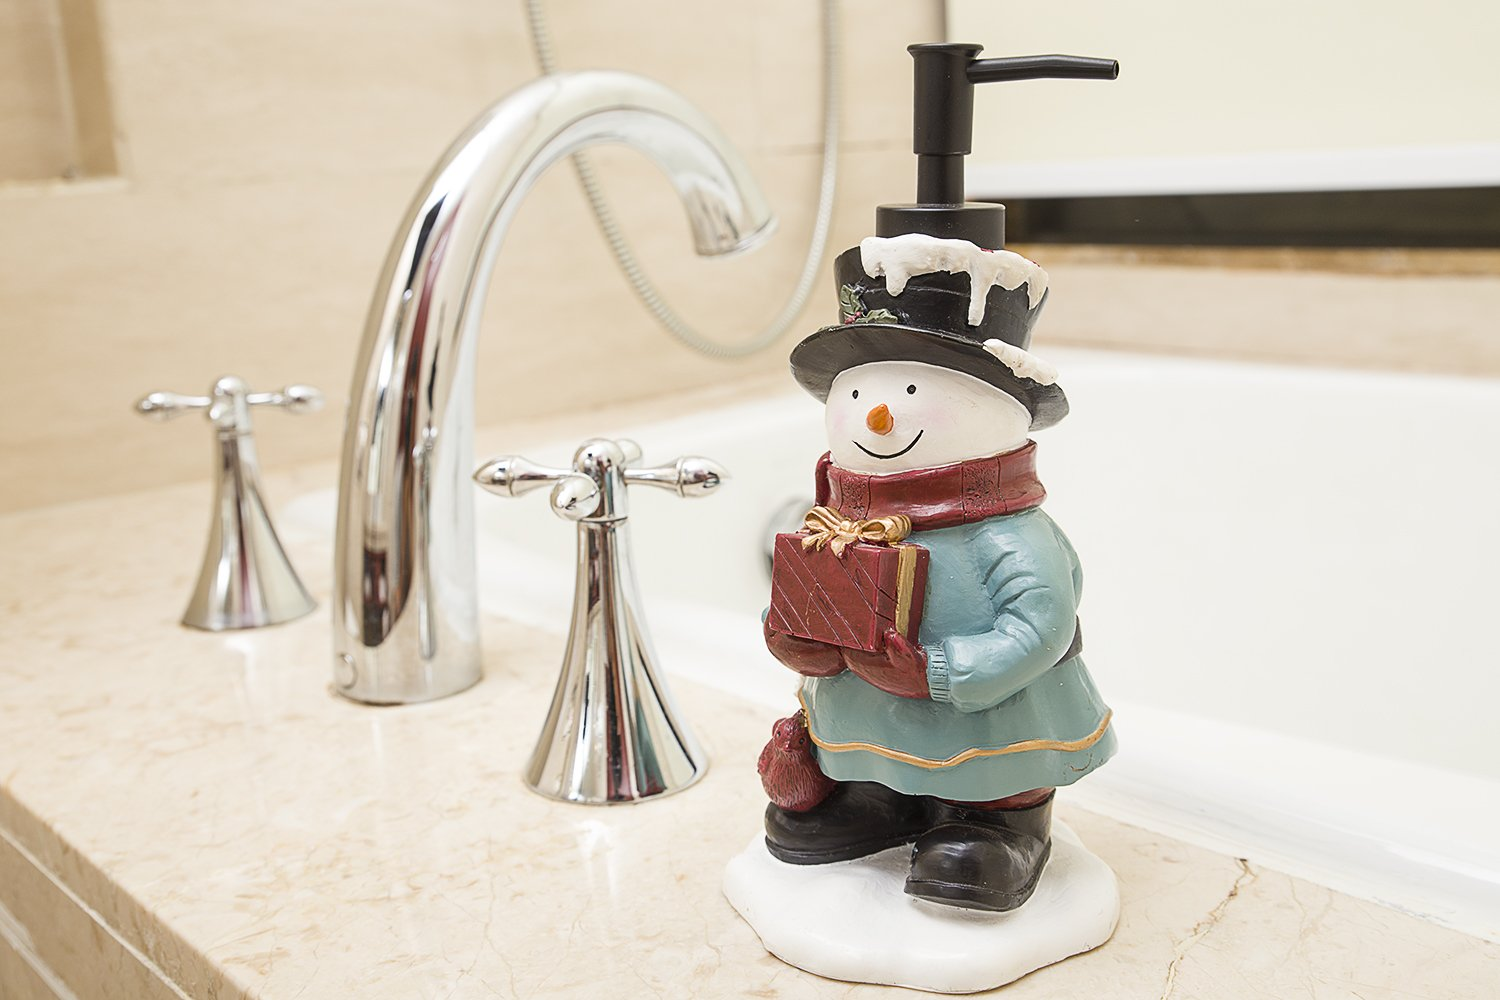 Amazon.com: Bathpro Bathroom Accessories,Shower Lotion/Soap Dispenser,Chritsmas Bath Set,Bath Collection (Snowman,Coloful): Home & Kitchen